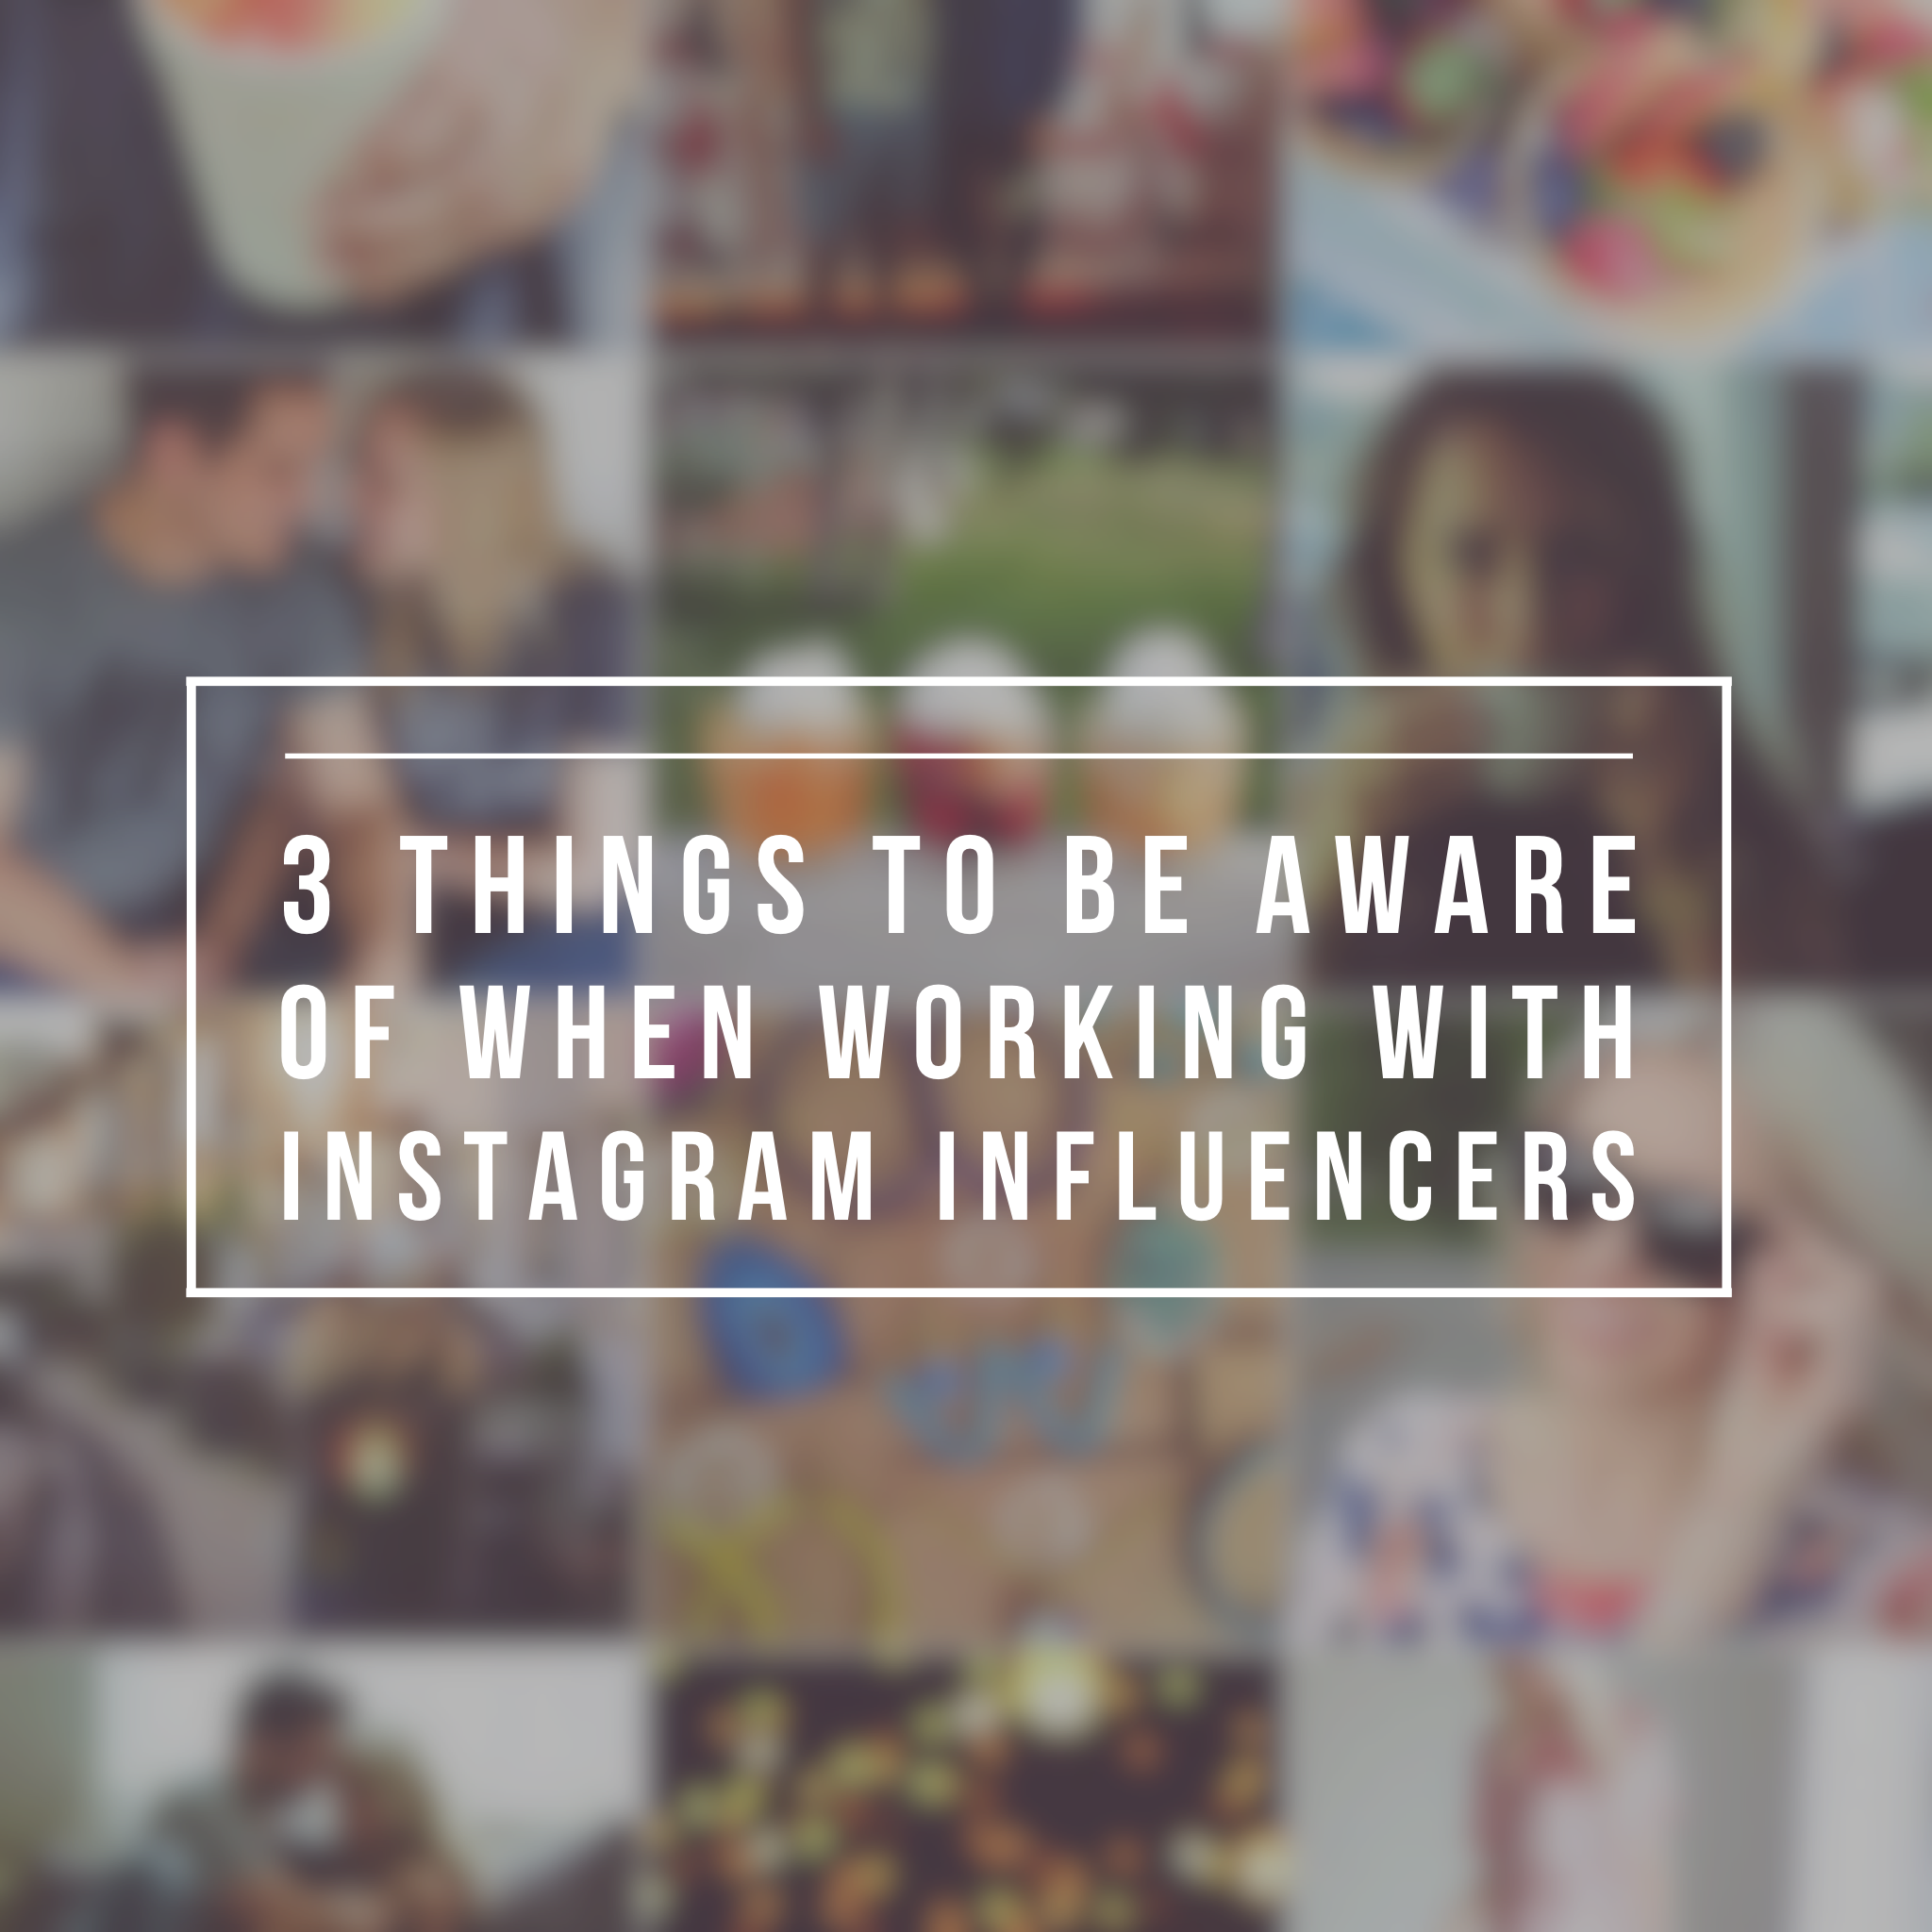 3 things to be aware of when working with instagram influencers.PNG